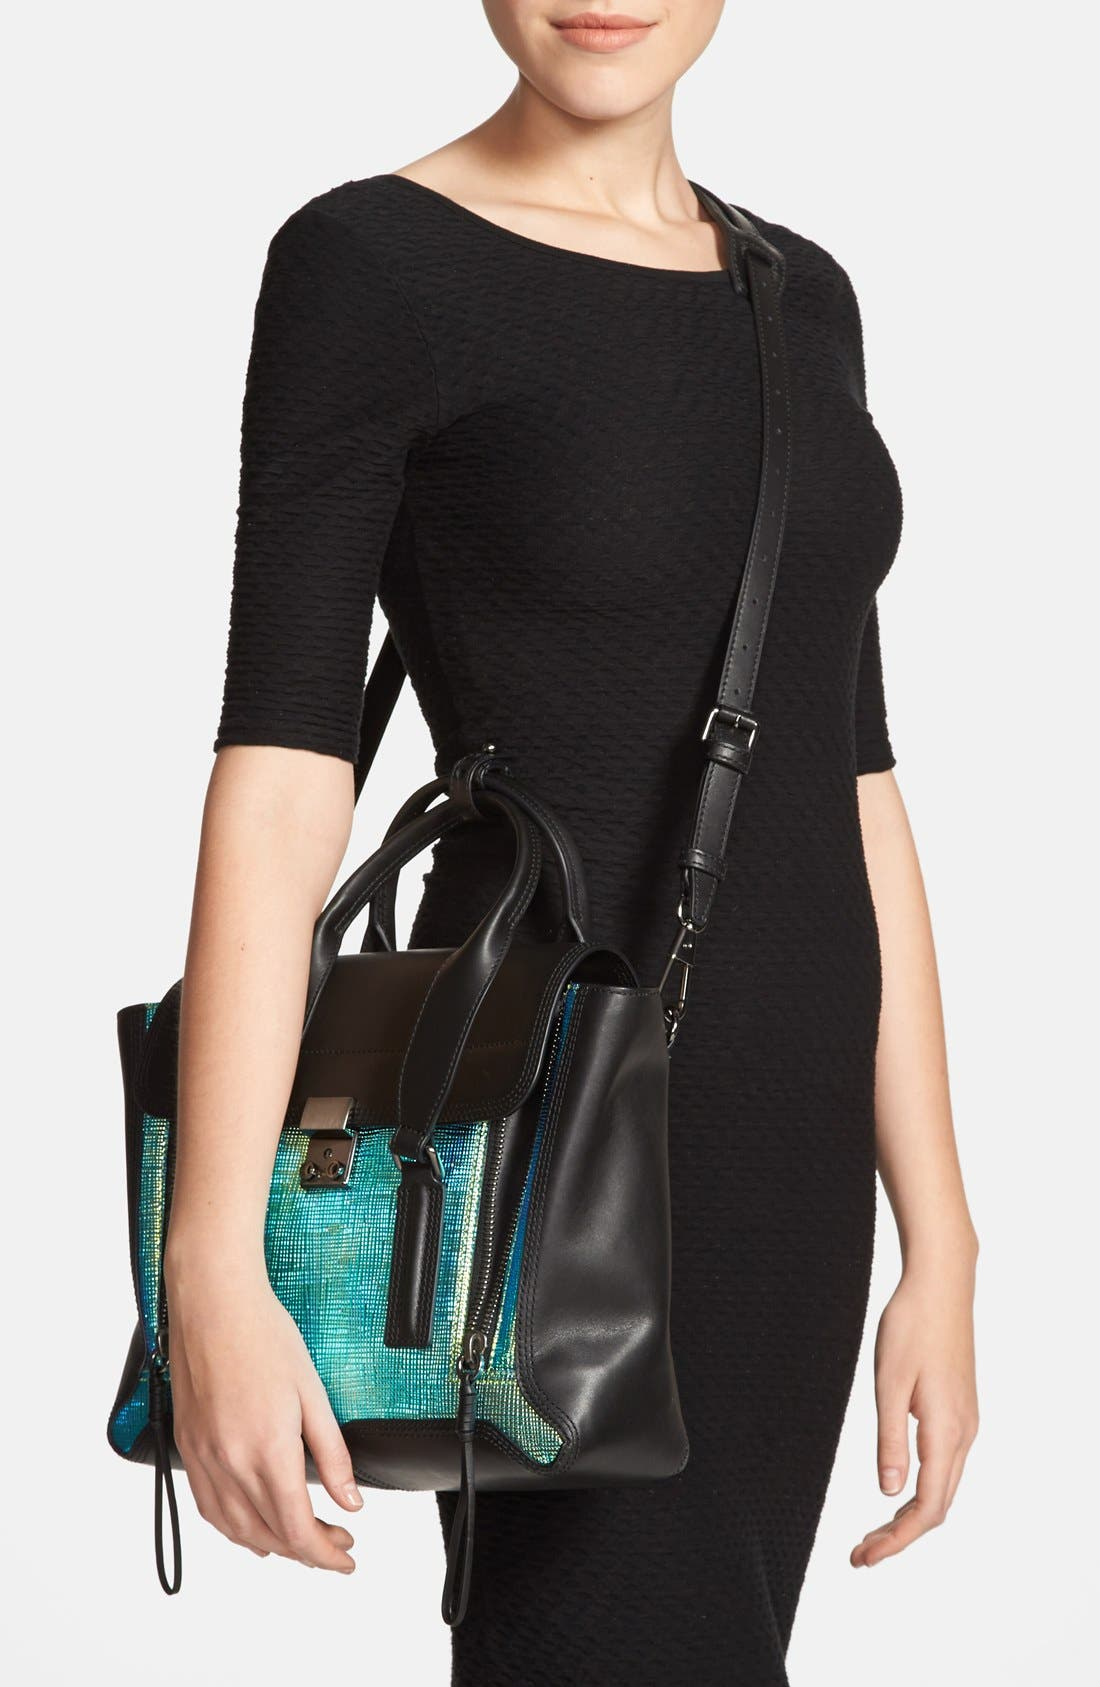 Alternate Image 2  - 3.1 Phillip Lim 'Medium Pashli' Iridescent Satchel